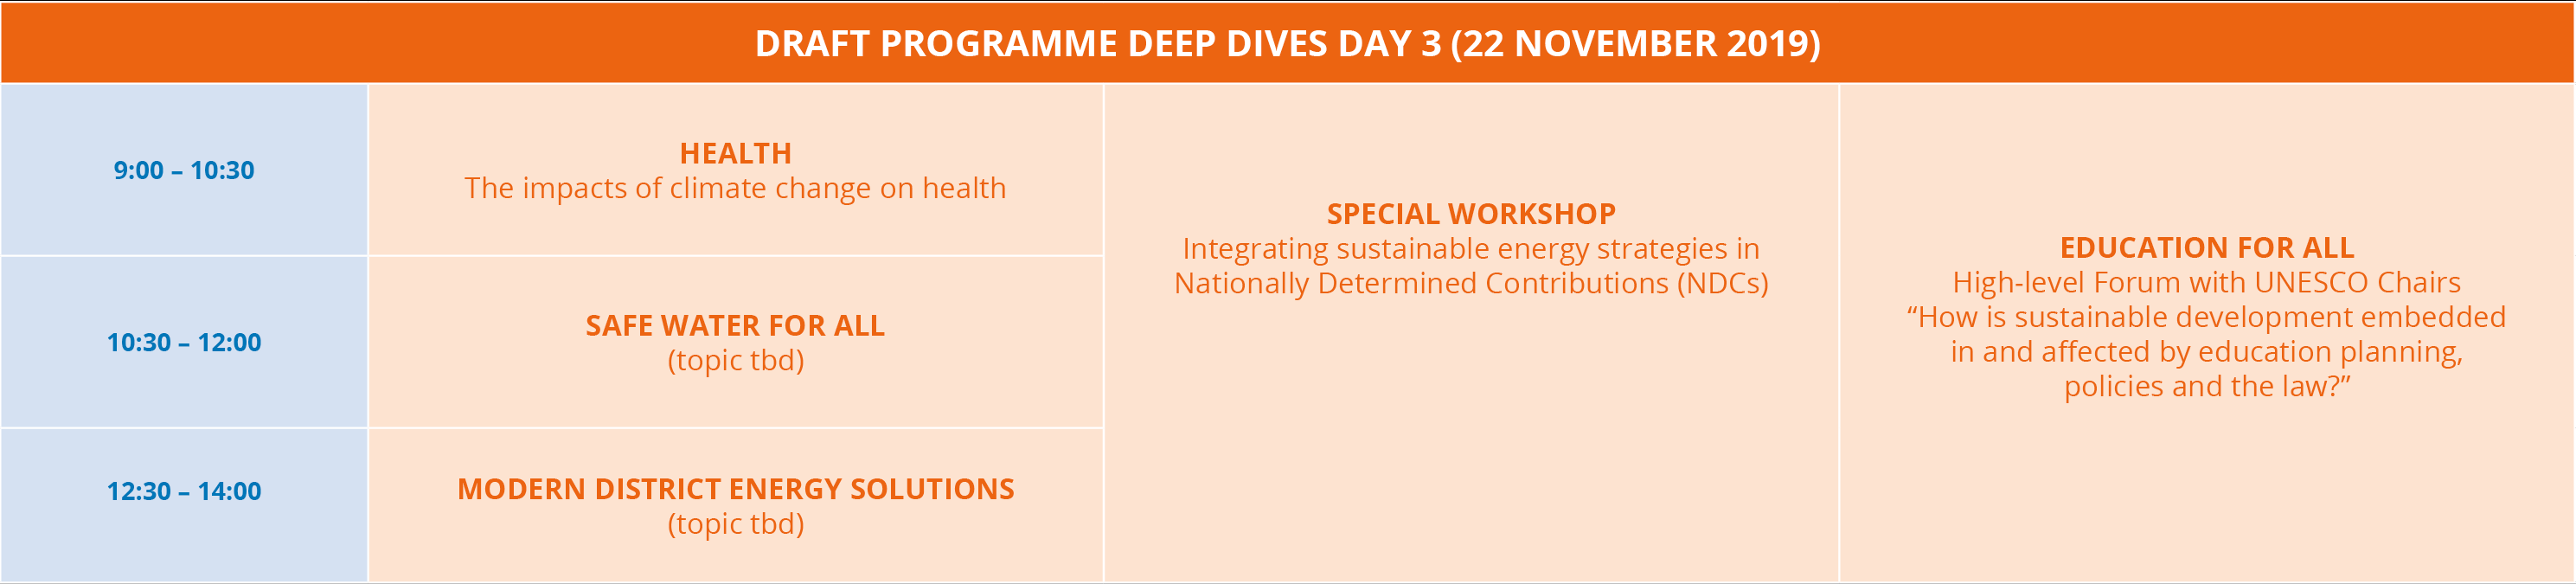 G-STIC 2019 Programme Deep Dive Sessions Day 3